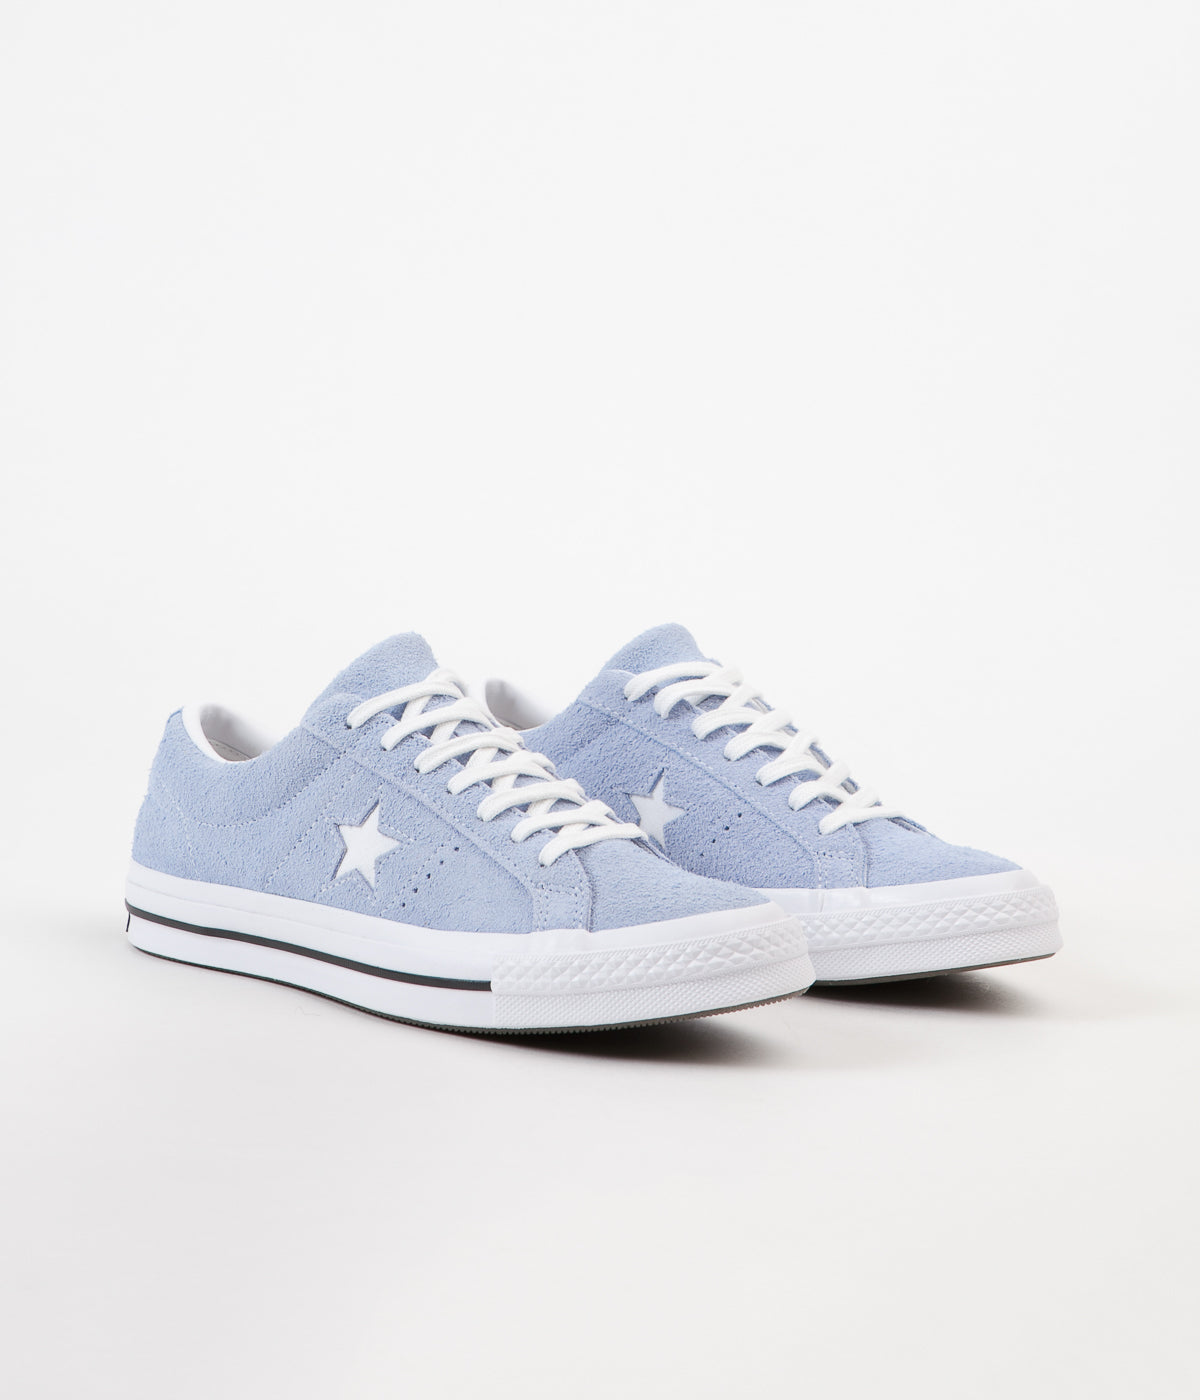 Converse One Star Ox Shoes Blue Chill White Black